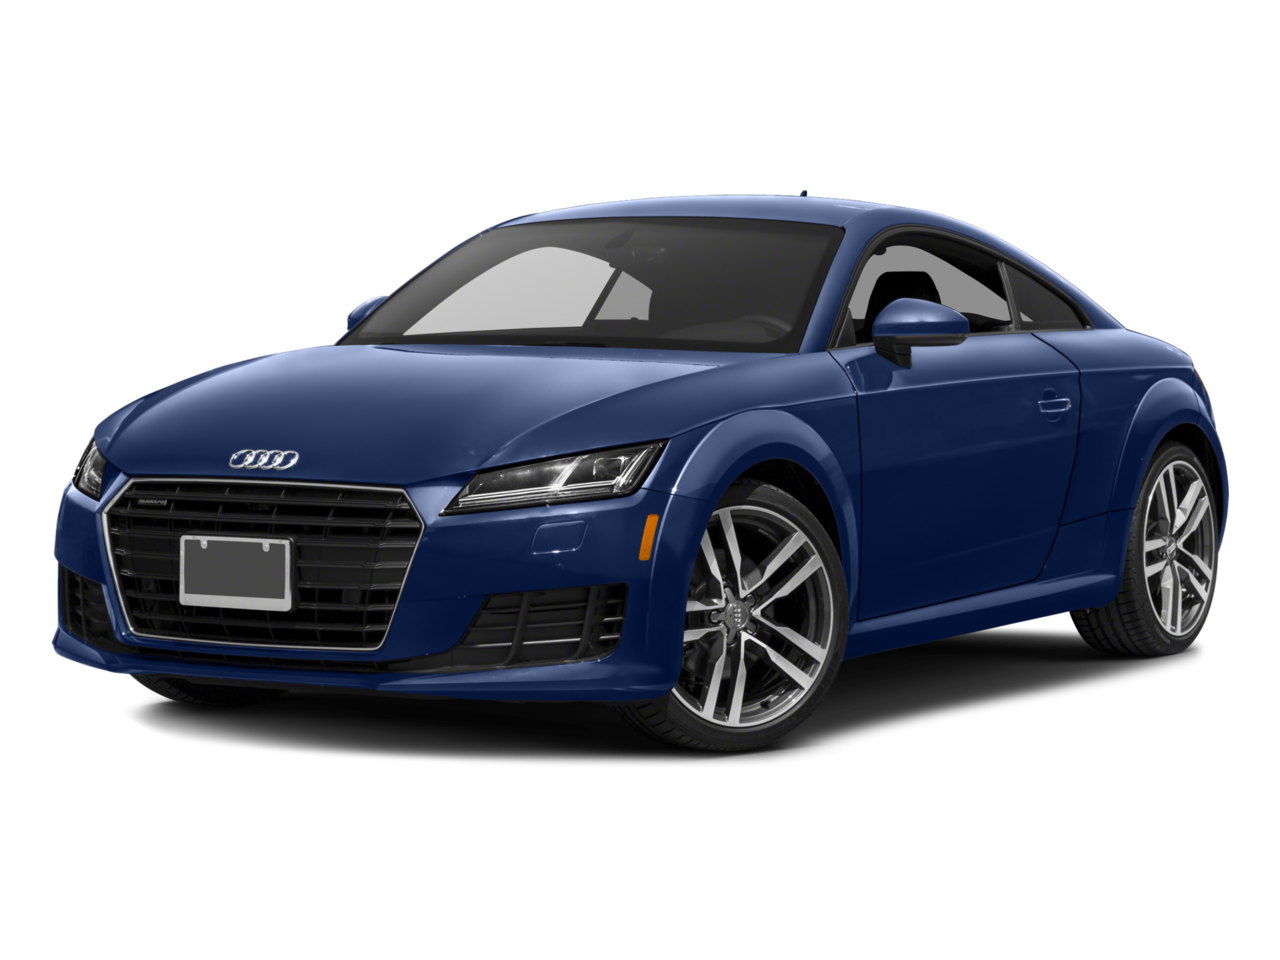 2017 Audi TT Coupe in Memphis, TN